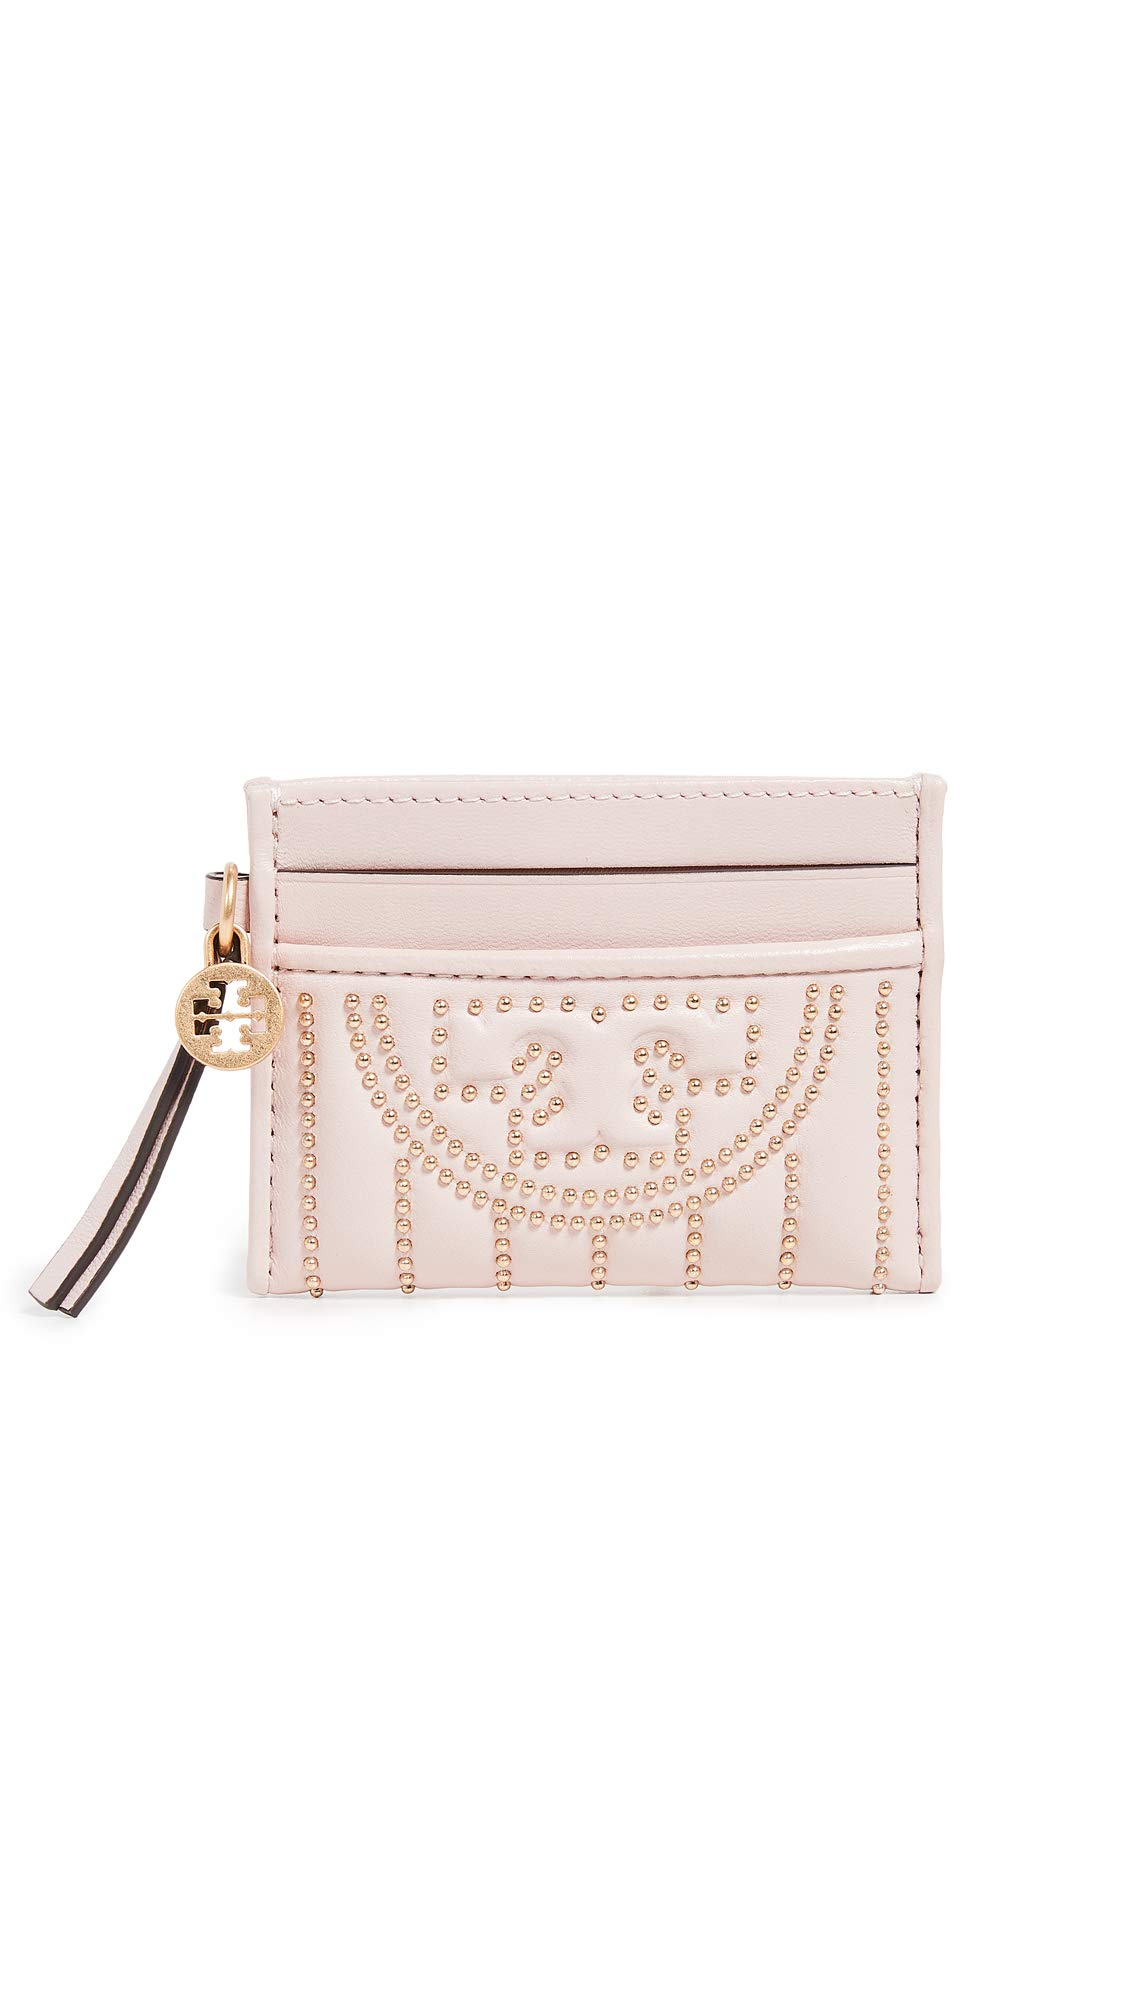 Tory Burch Women's Fleming Mini Stud Slim Card Case, Shell Pink, One Size